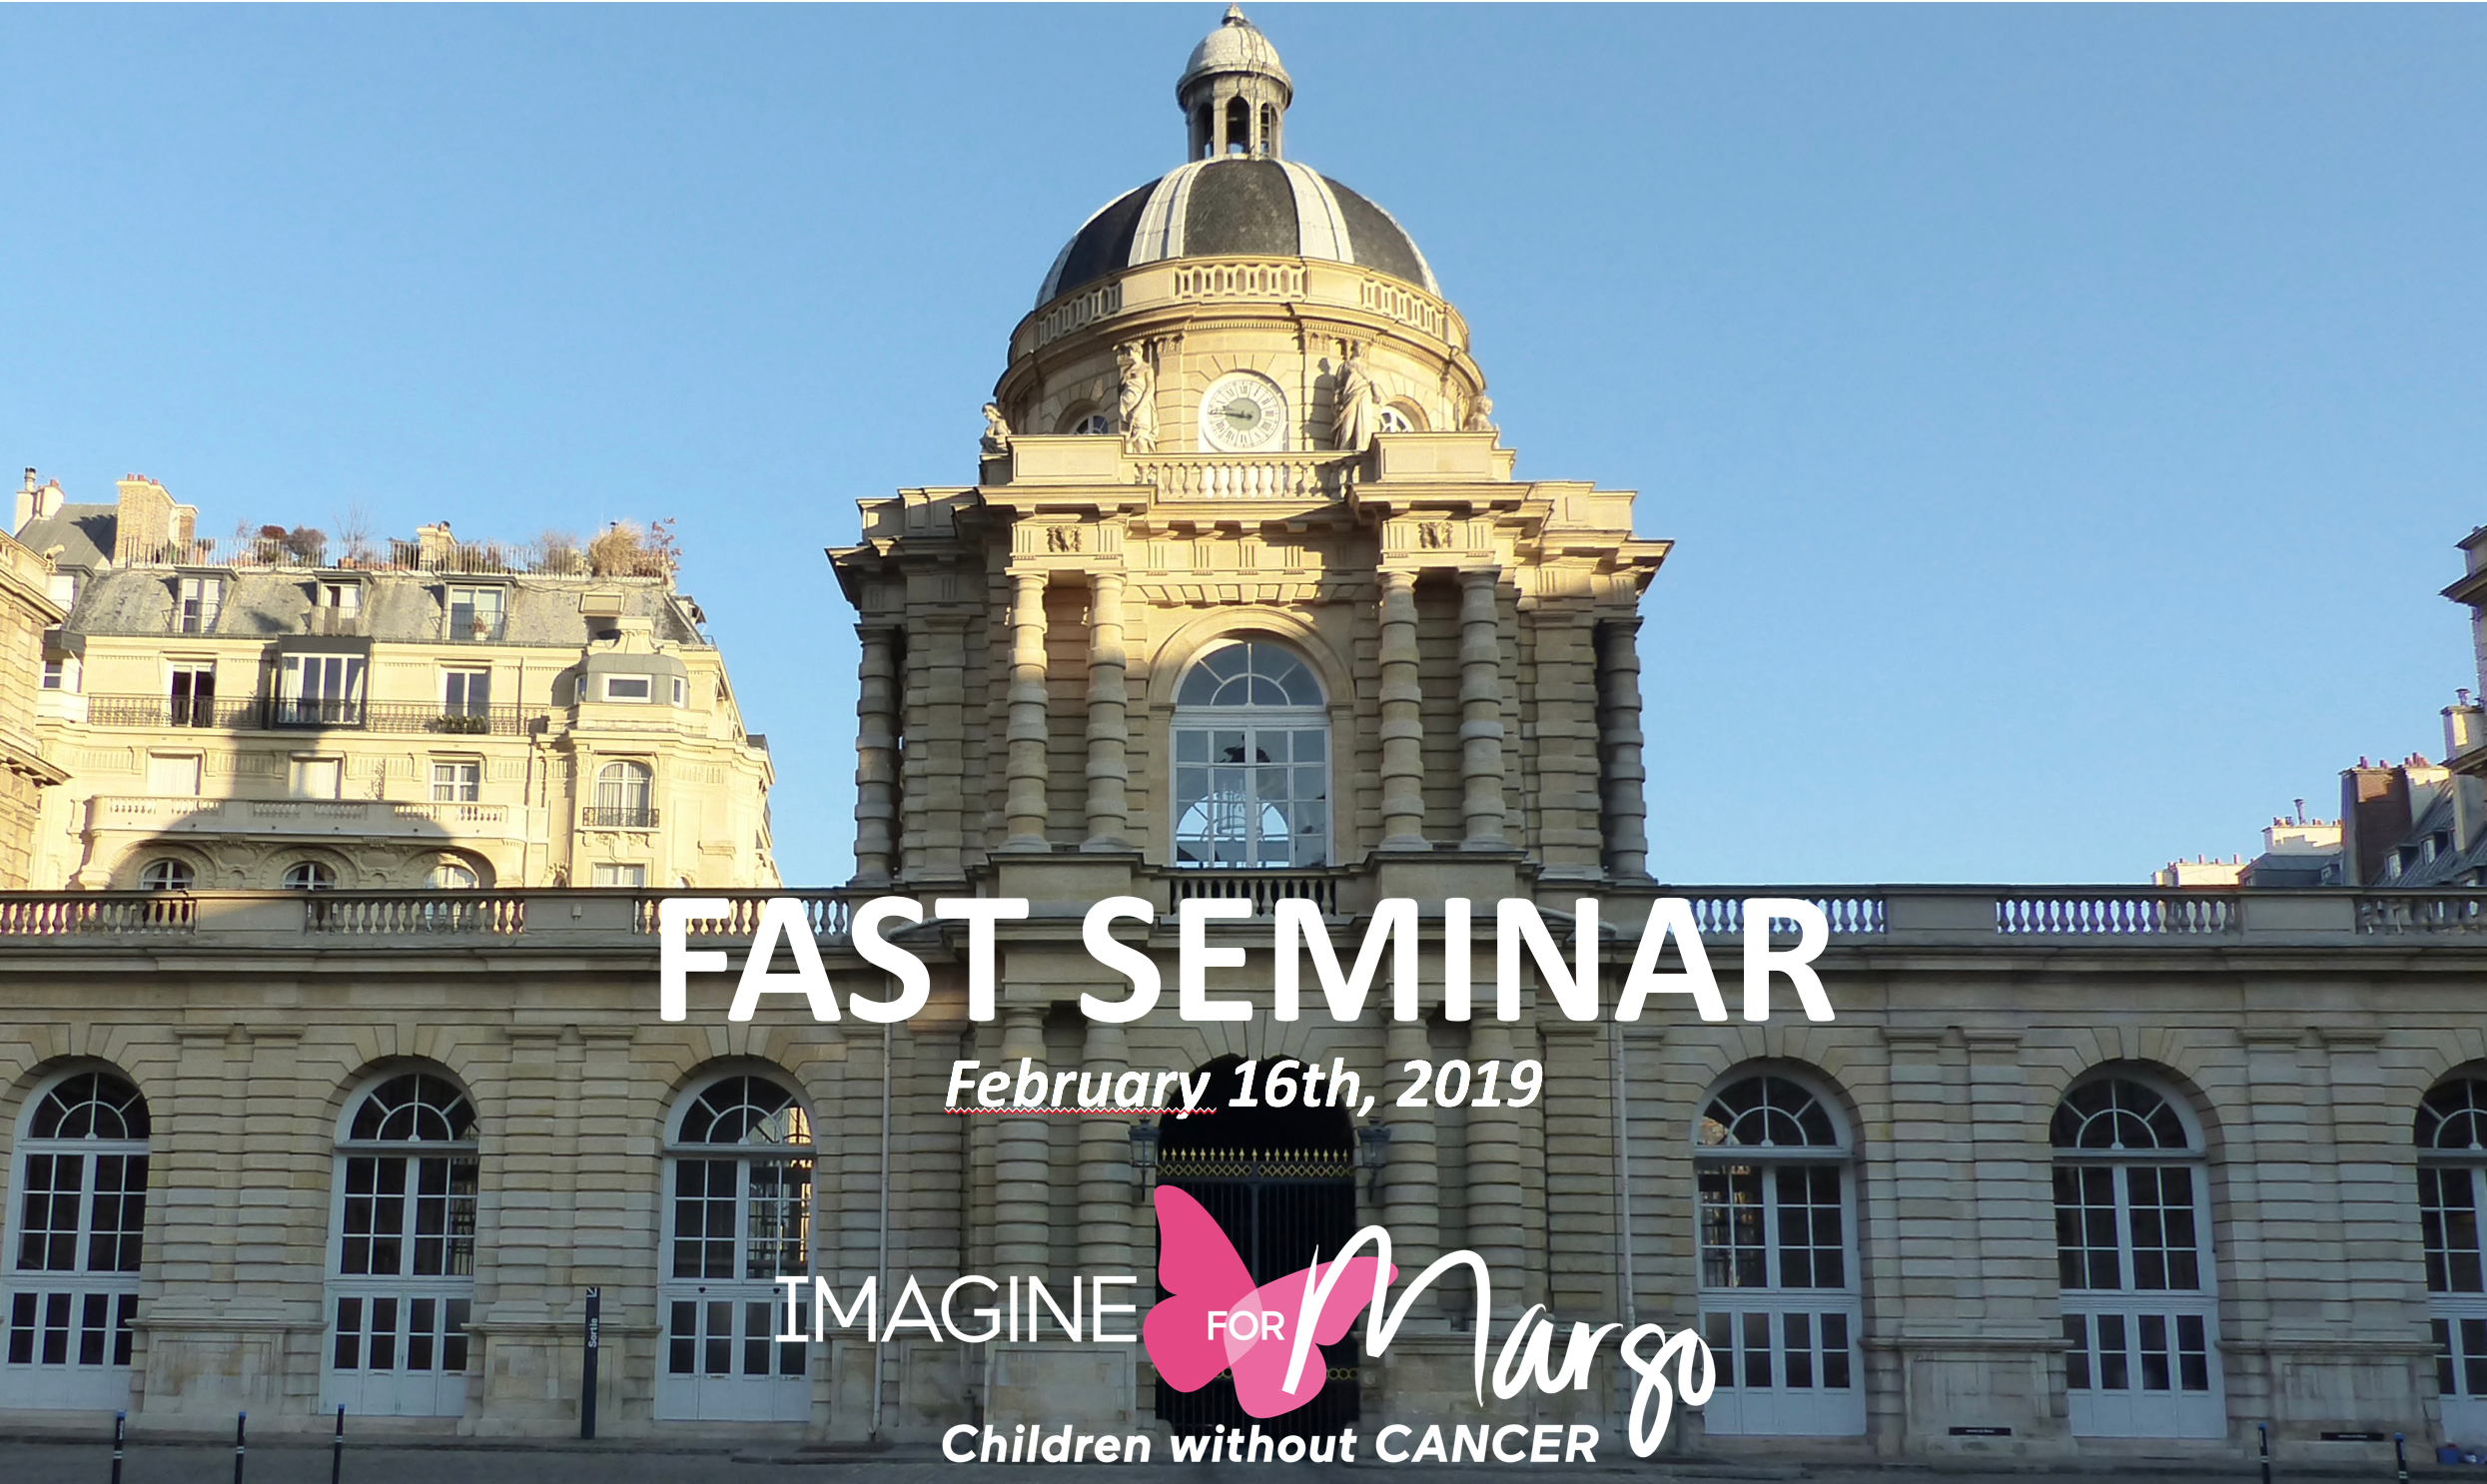 FAST 2019 SEMINAR ON RESEARCH AGAINST CHILDREN'S CANCER